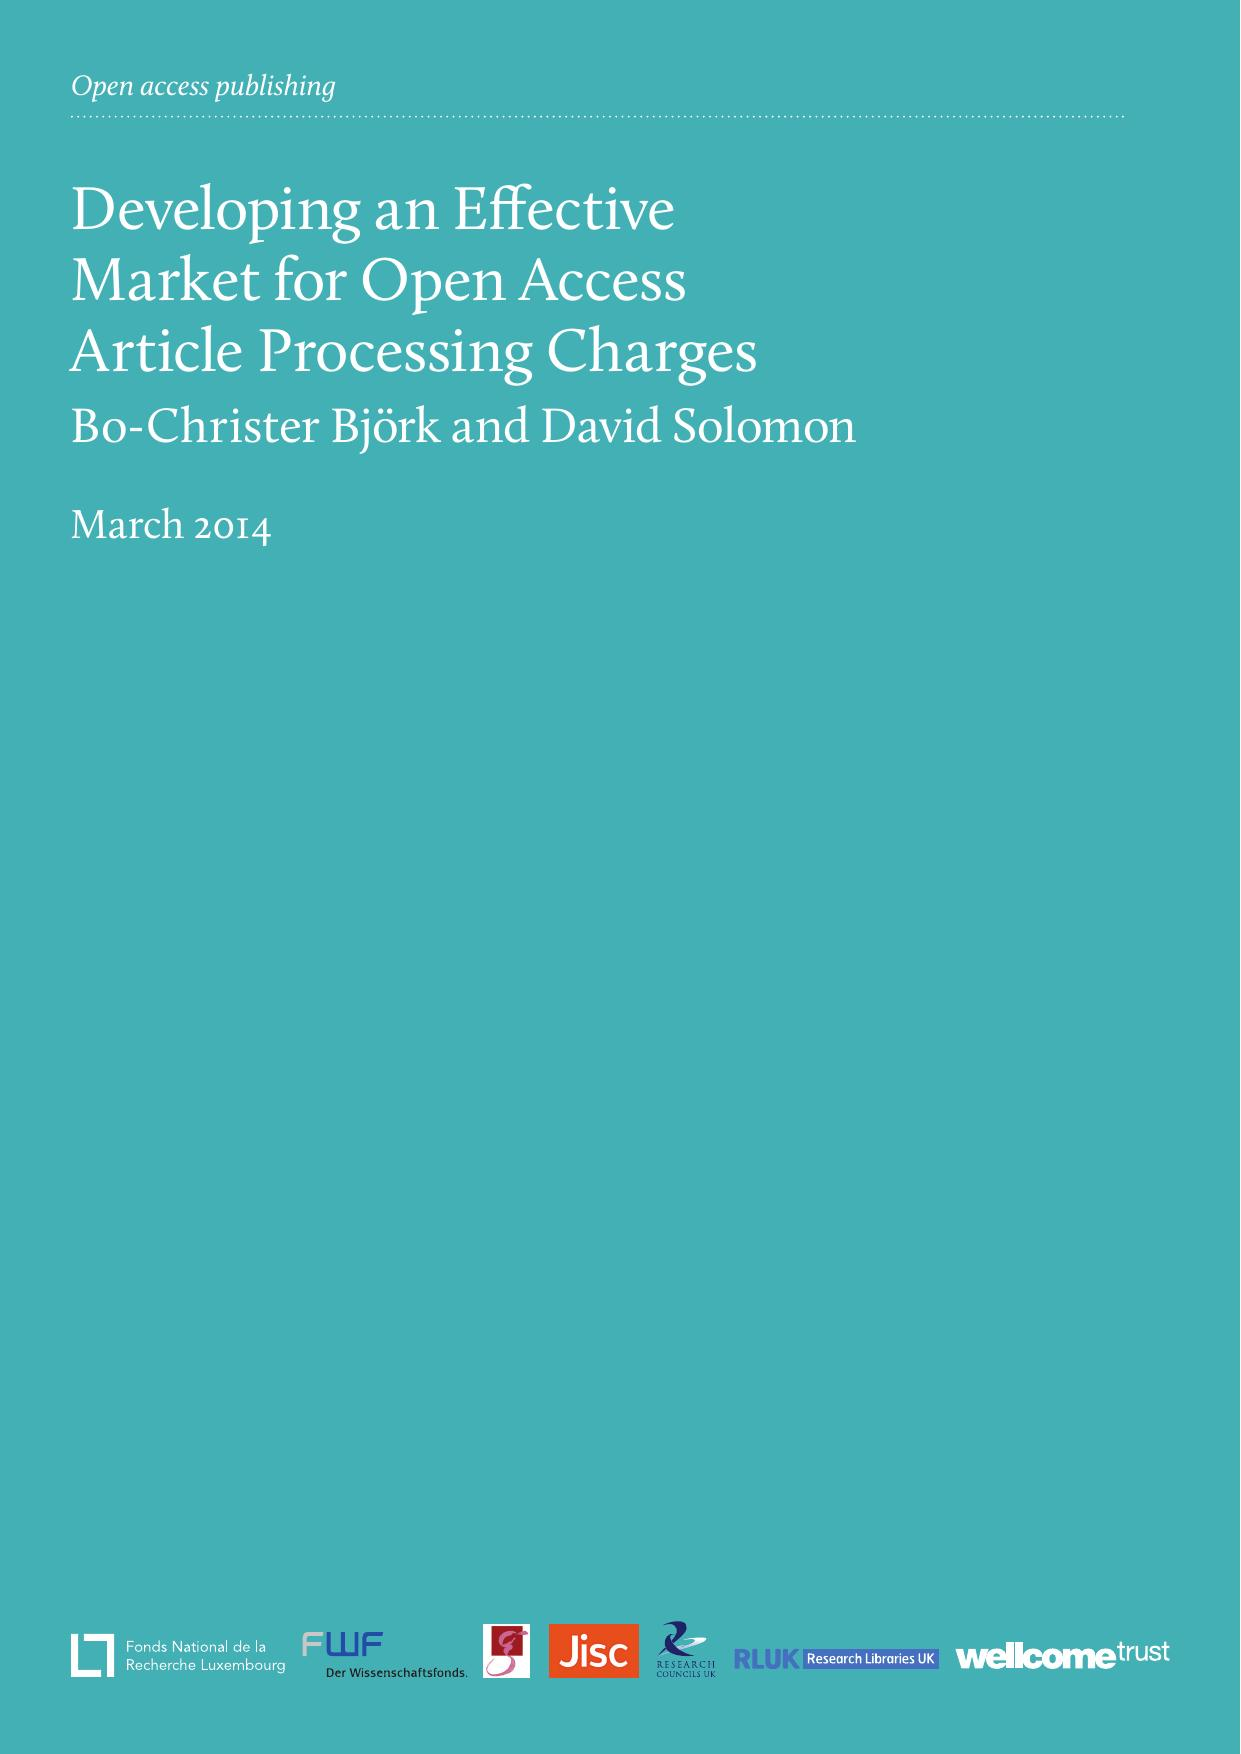 Developing an Effective Market for Open Access Assing Charges